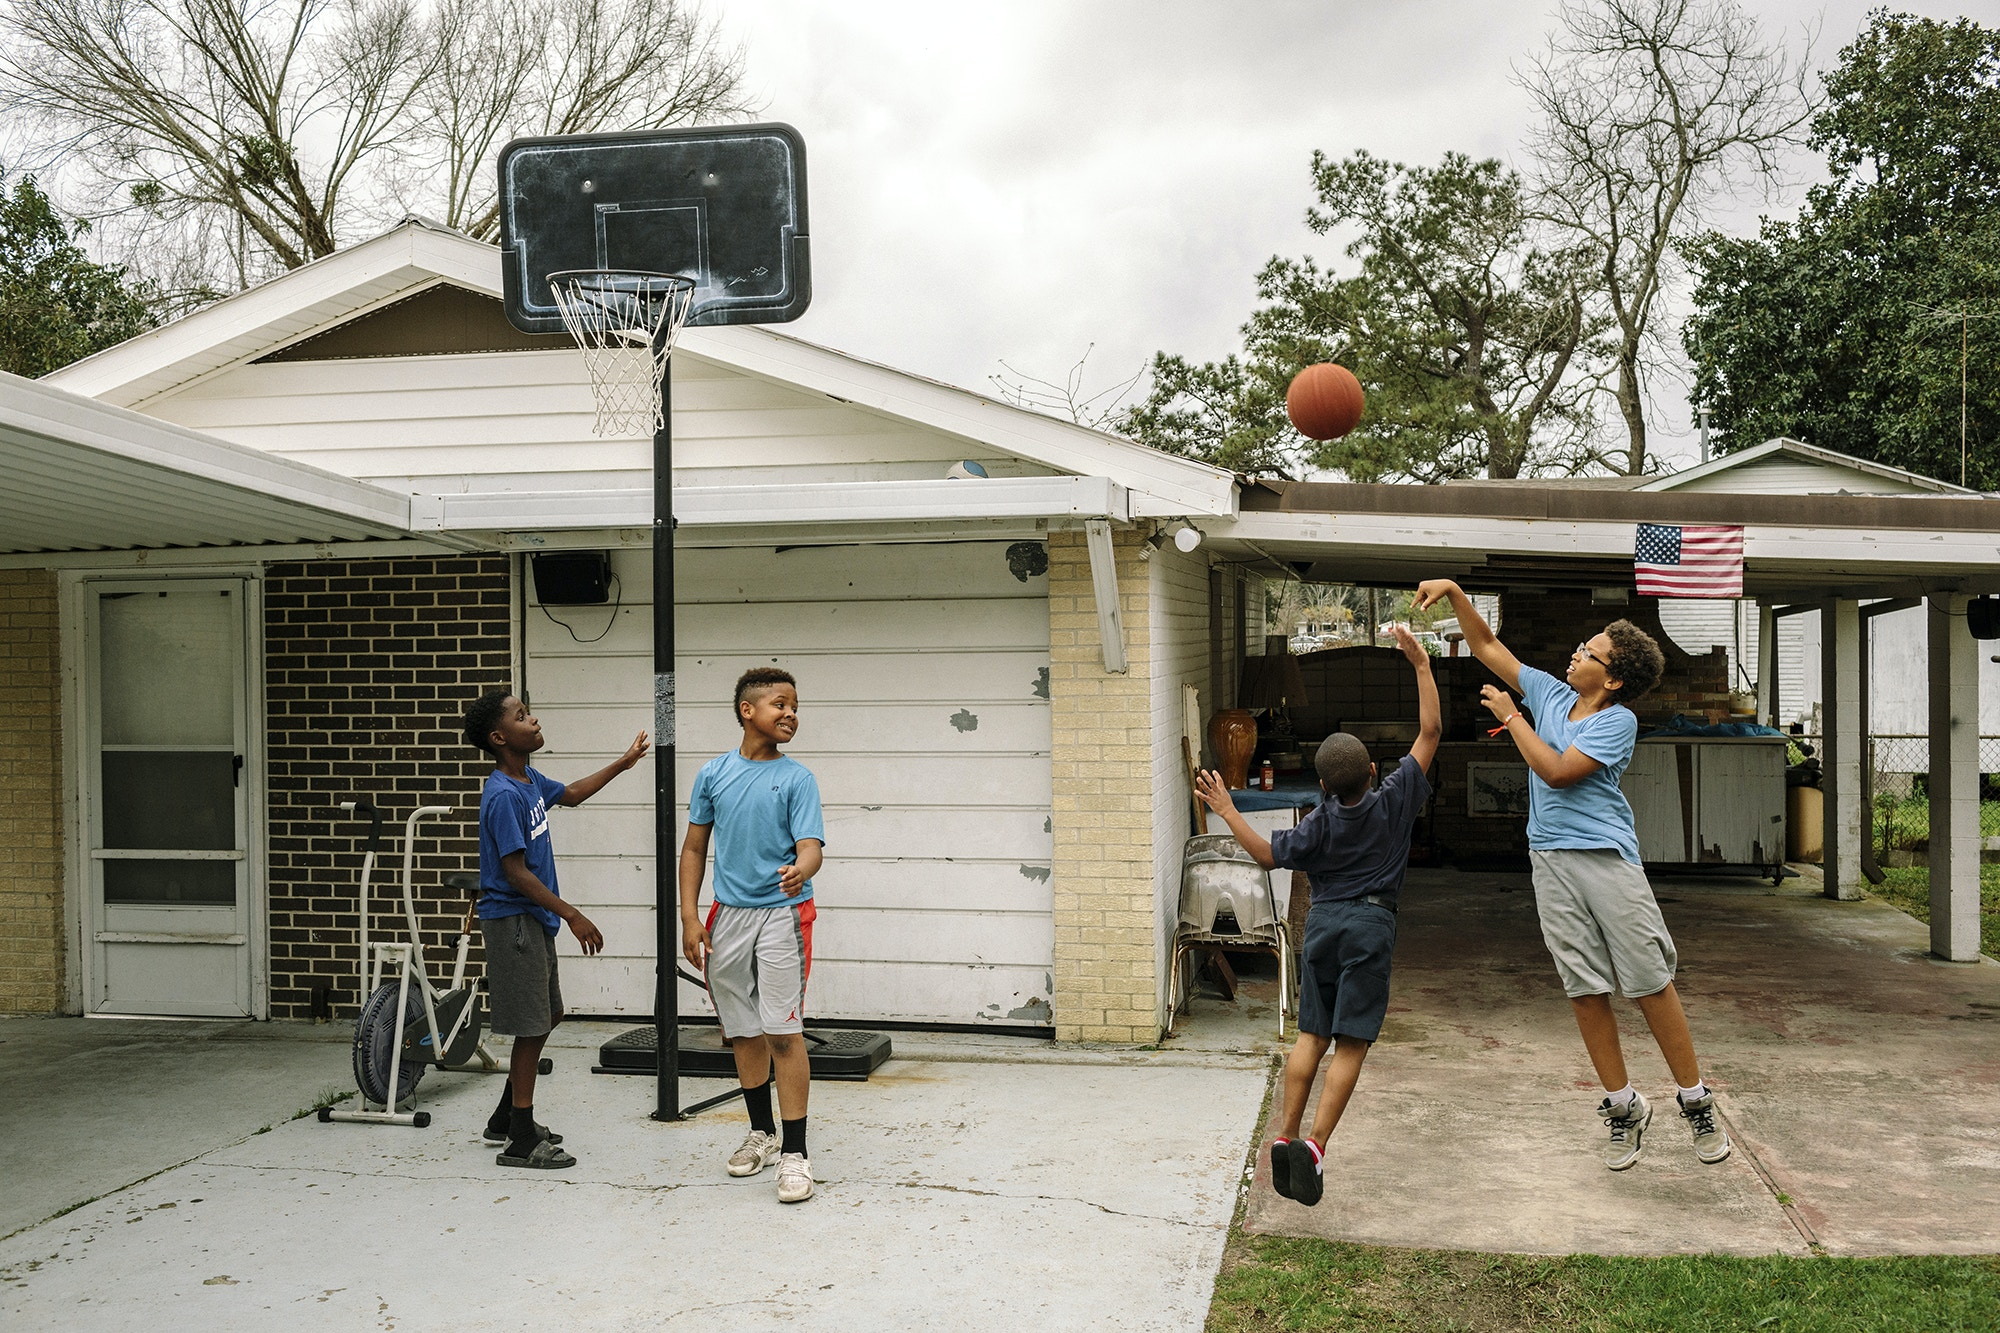 Reserve, LA - Feb 20, 2017 - Local youth play basketball after school in the driveway of a home located one block from the fenceline of the Dupont/Denka plant.